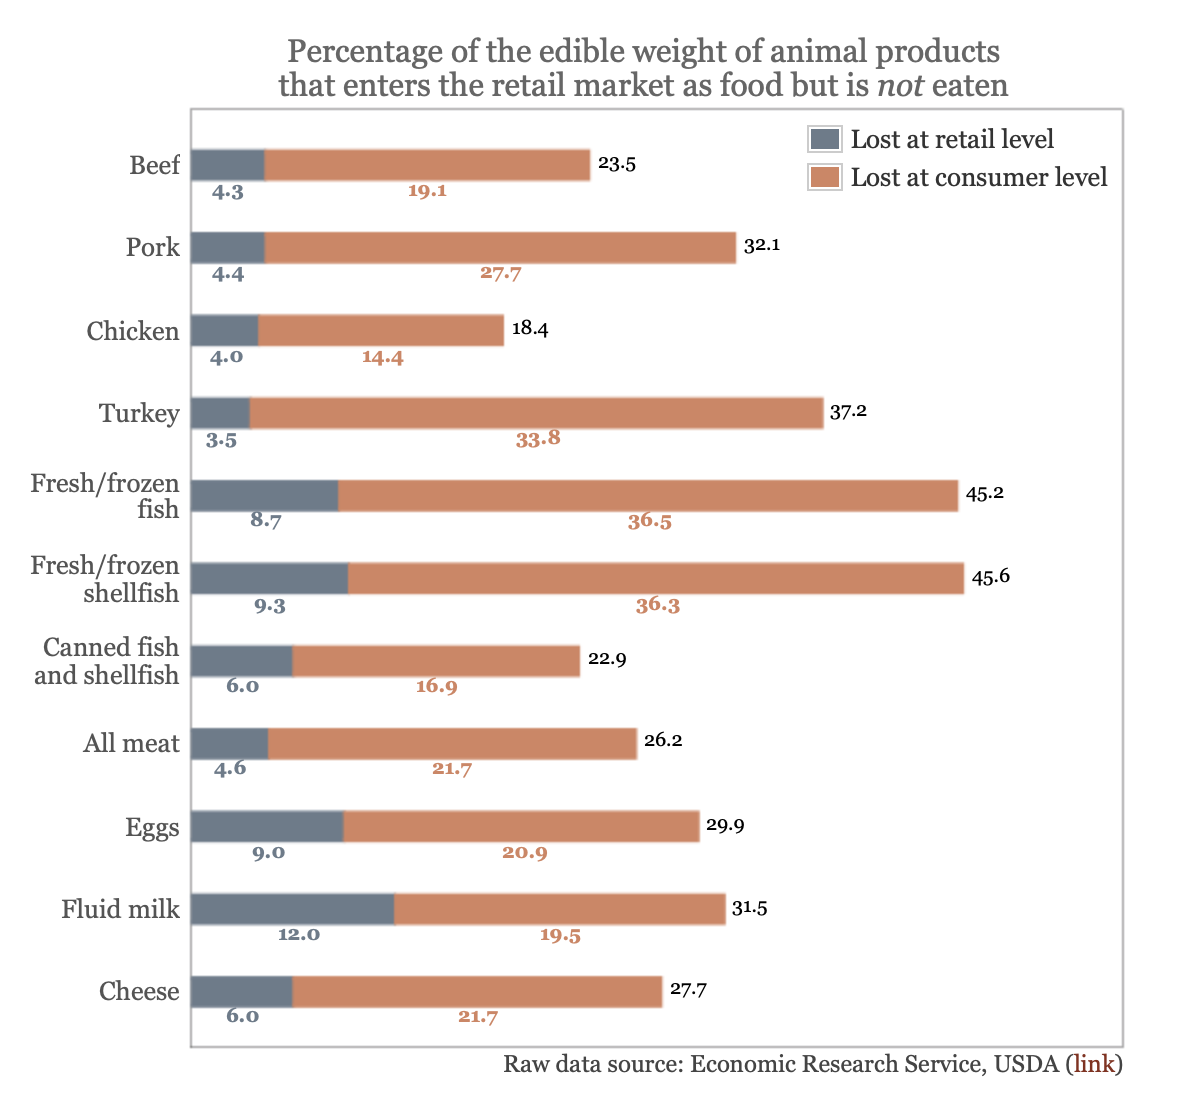 Percentage of the edible weight of animal products that enters the retail market as food but is not eaten